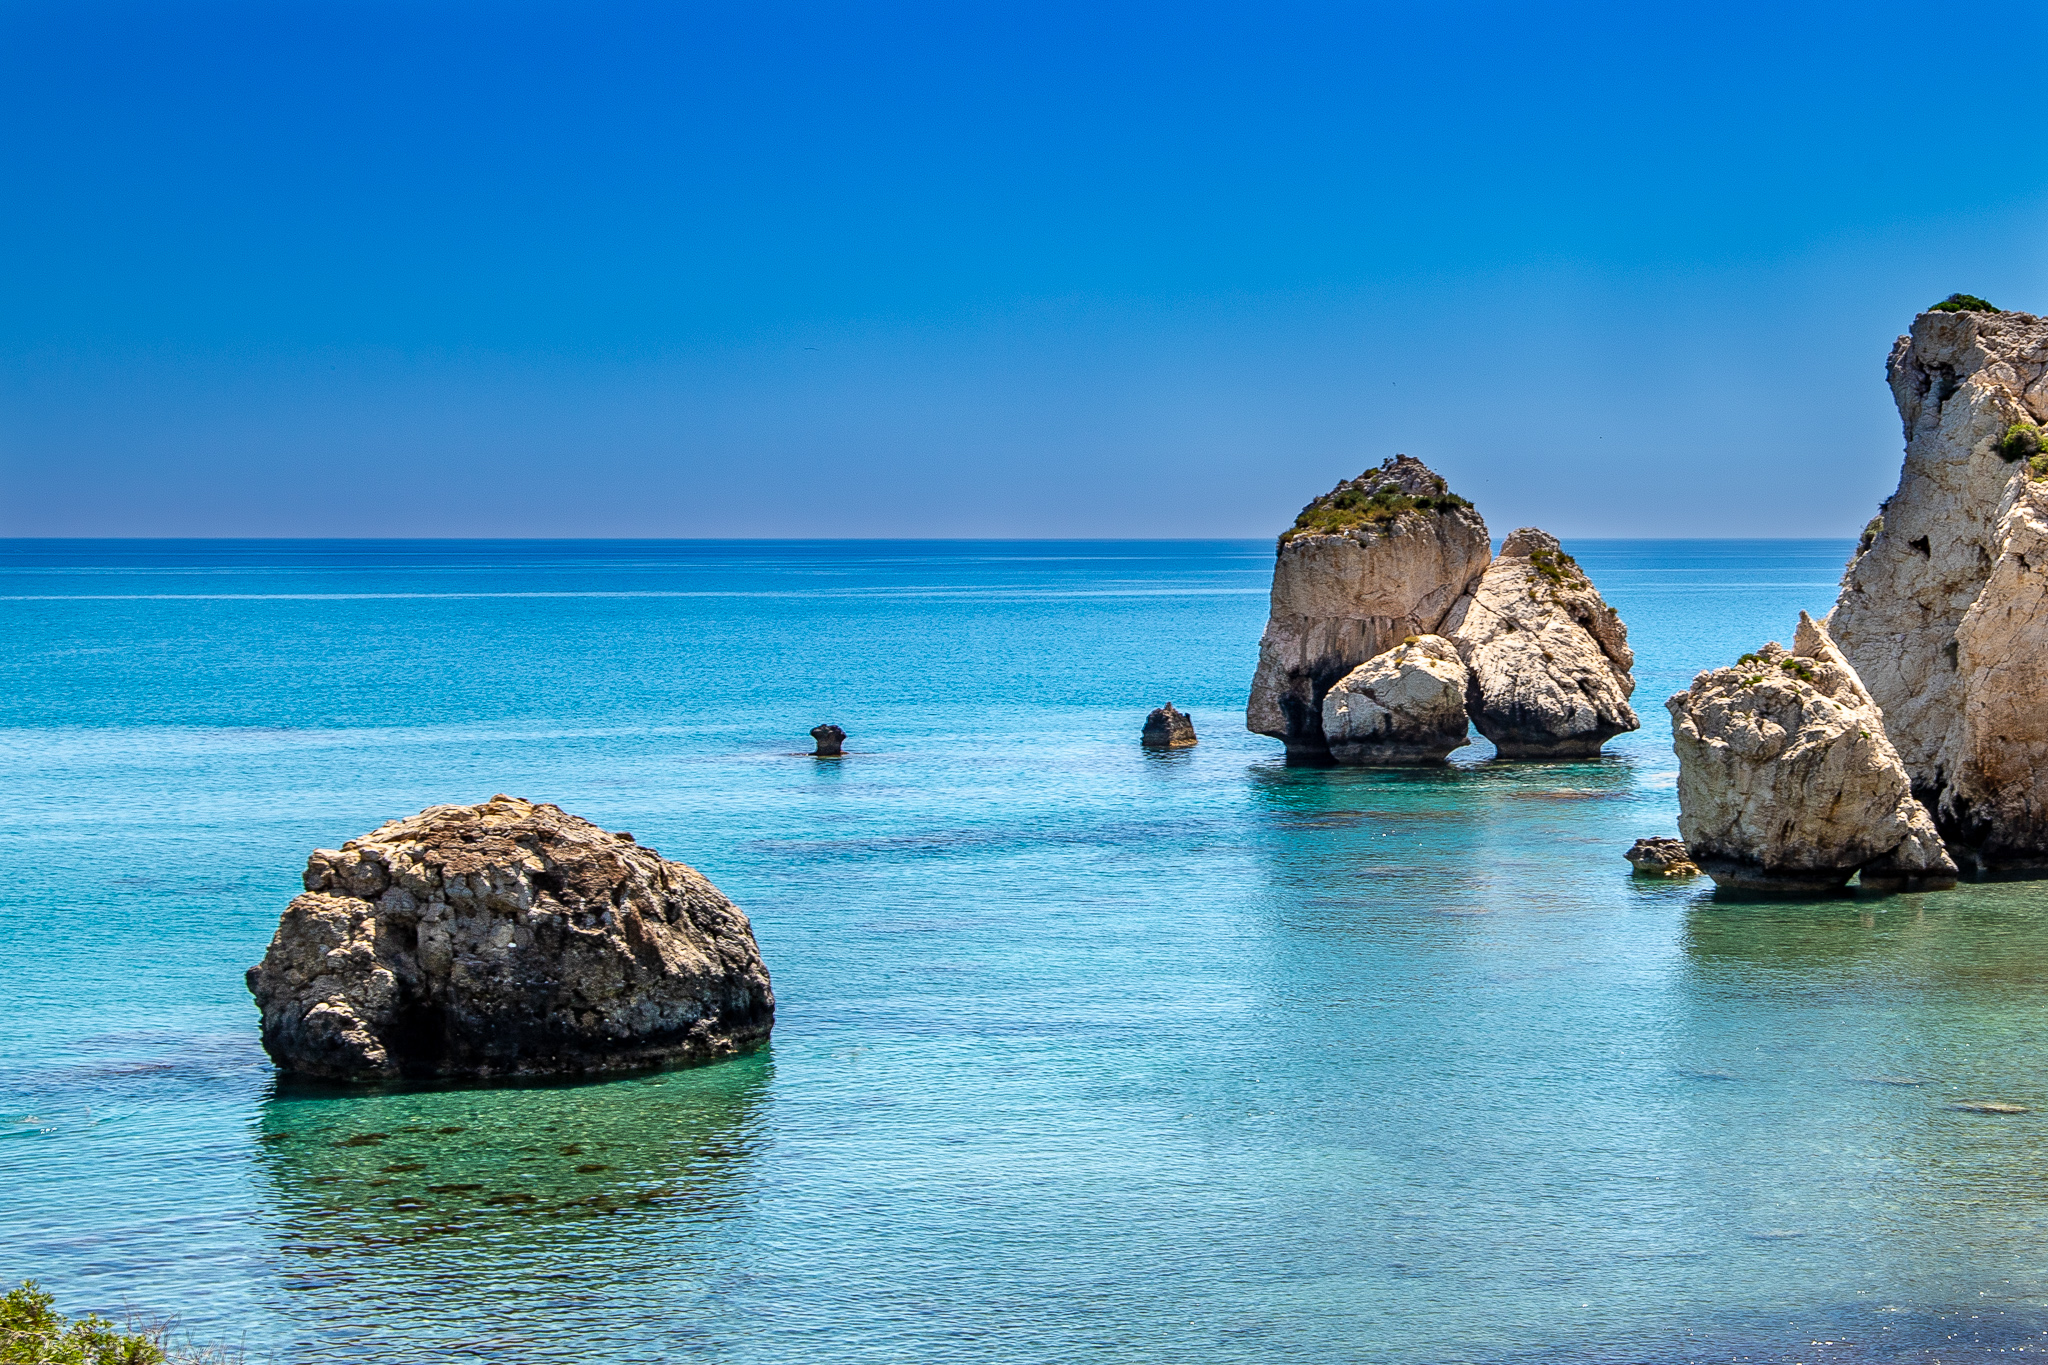 View out to Aphrodite's Rock